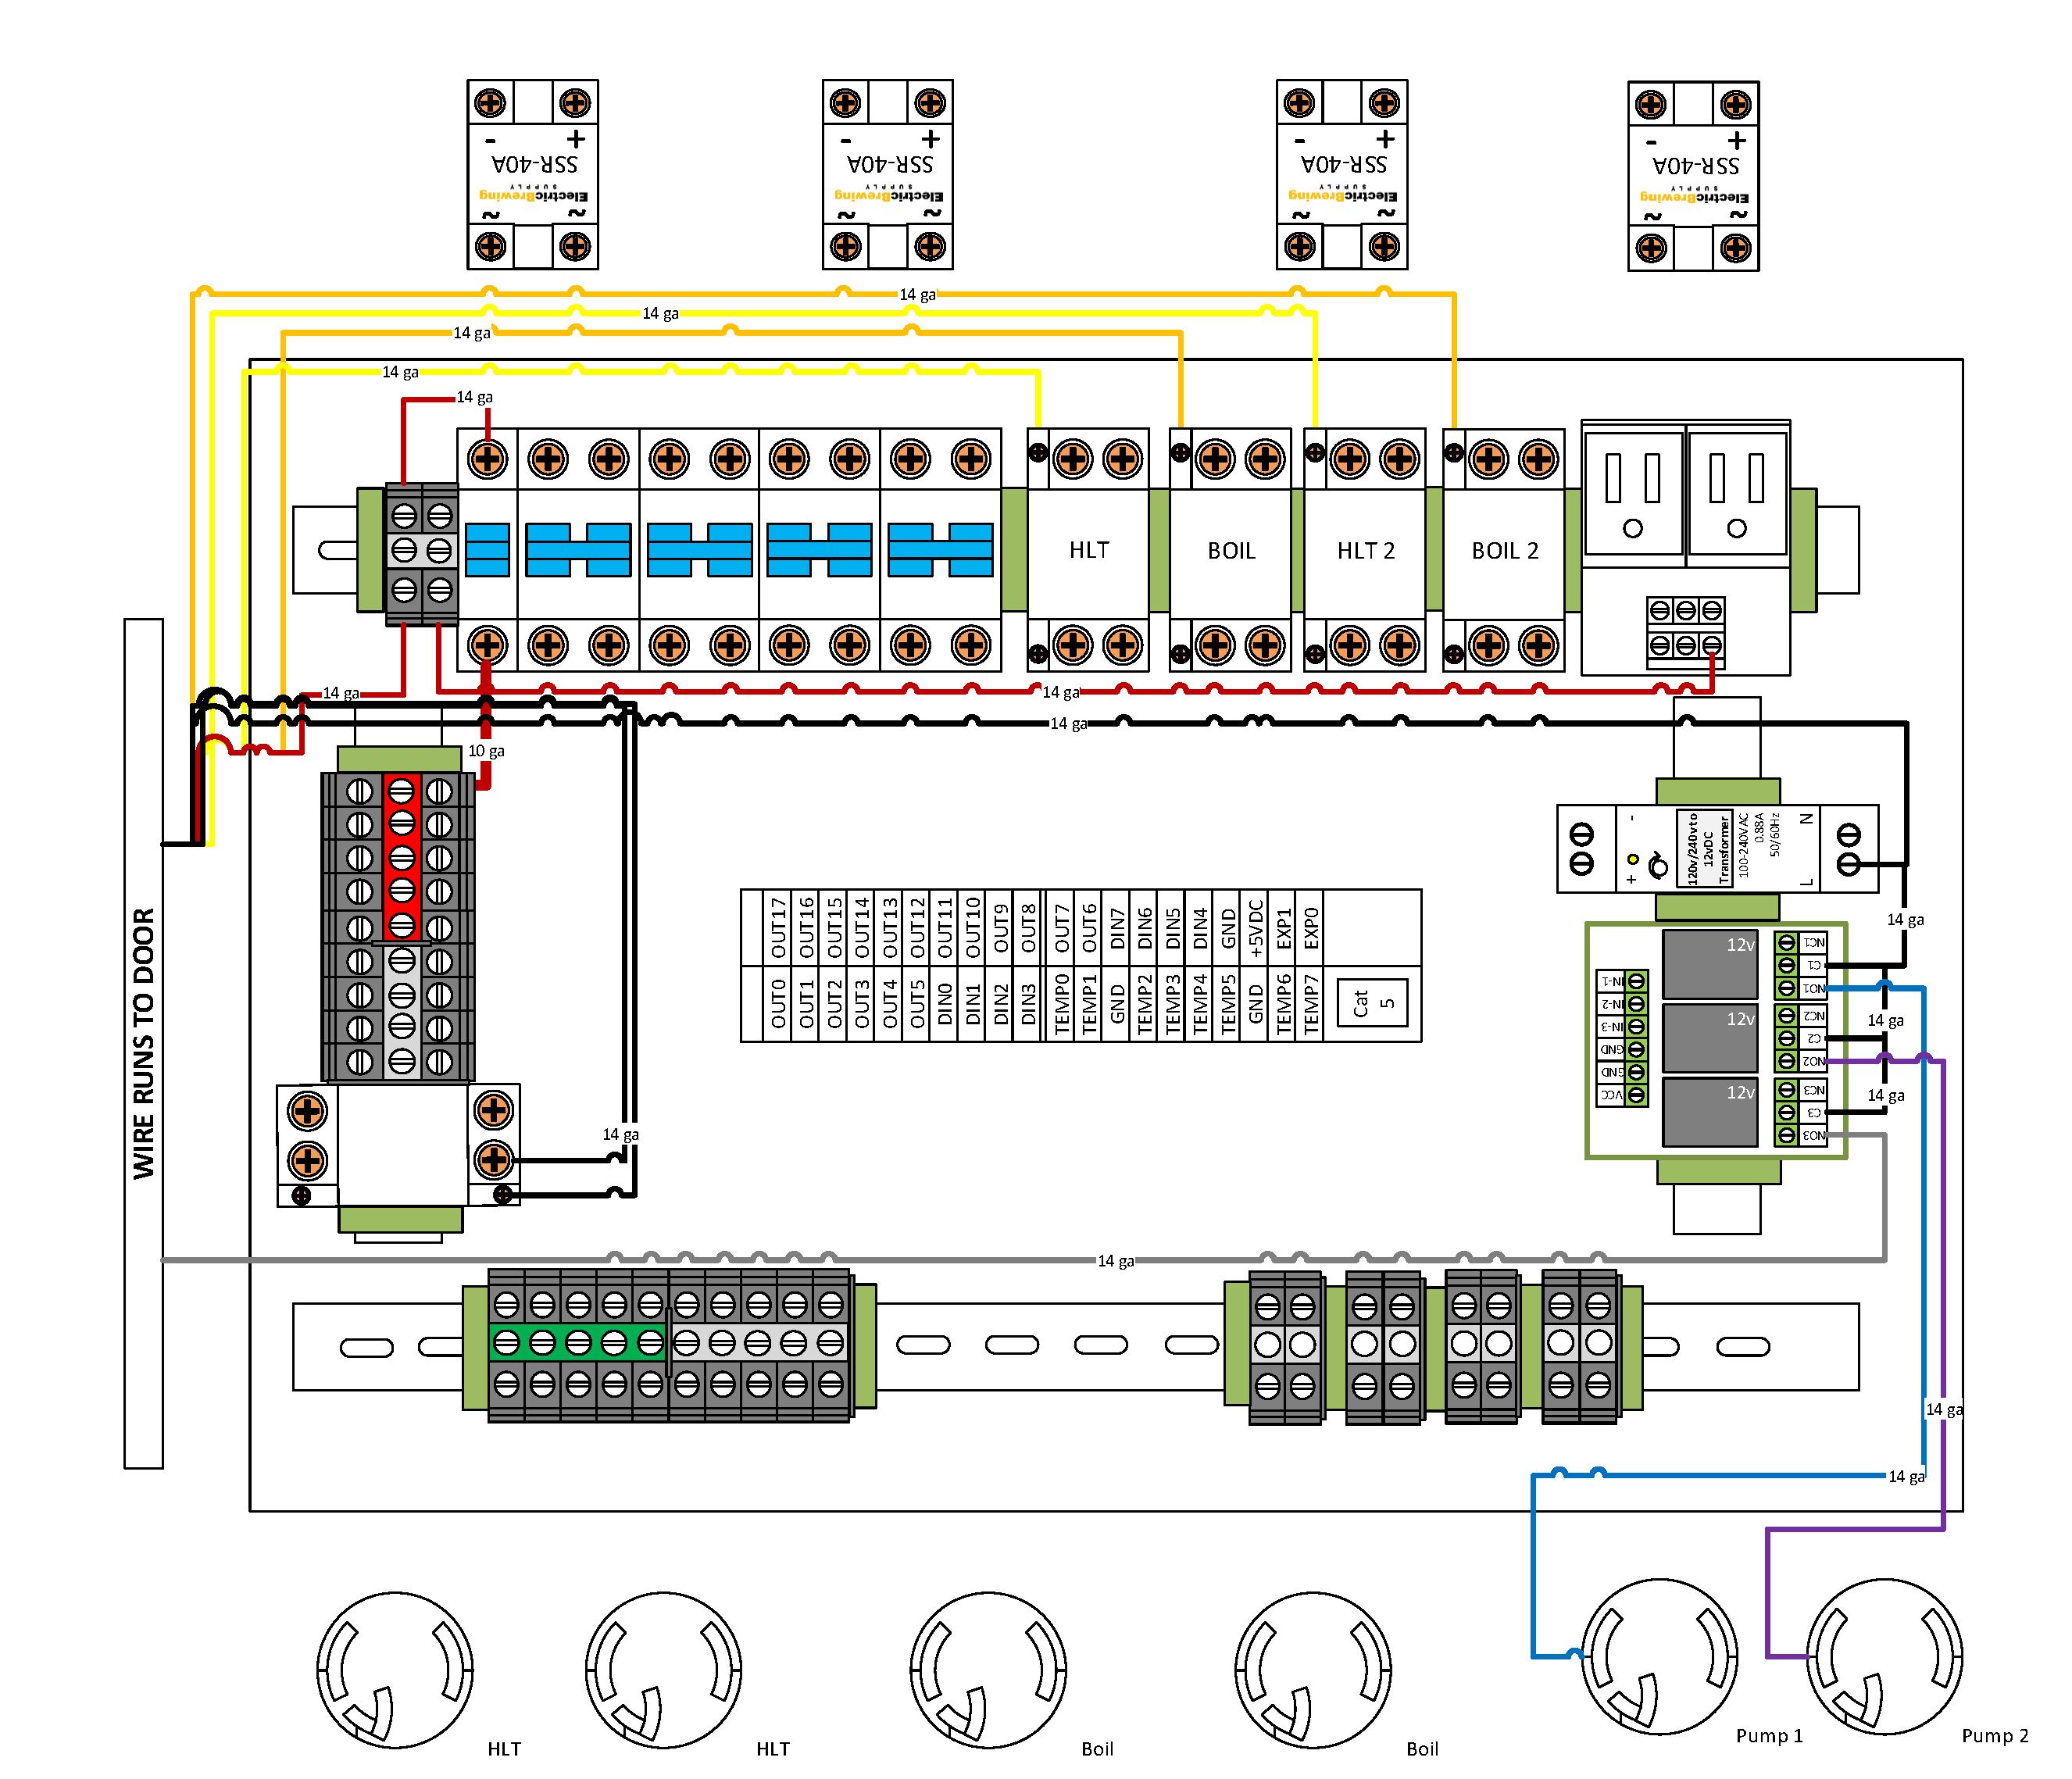 electrical control panel wiring diagram Download-Electric Brewery Wiring Diagram Fresh Bcs 4 Element Gen2 Control Panel Guide – Electric Brewing Supply 5-d